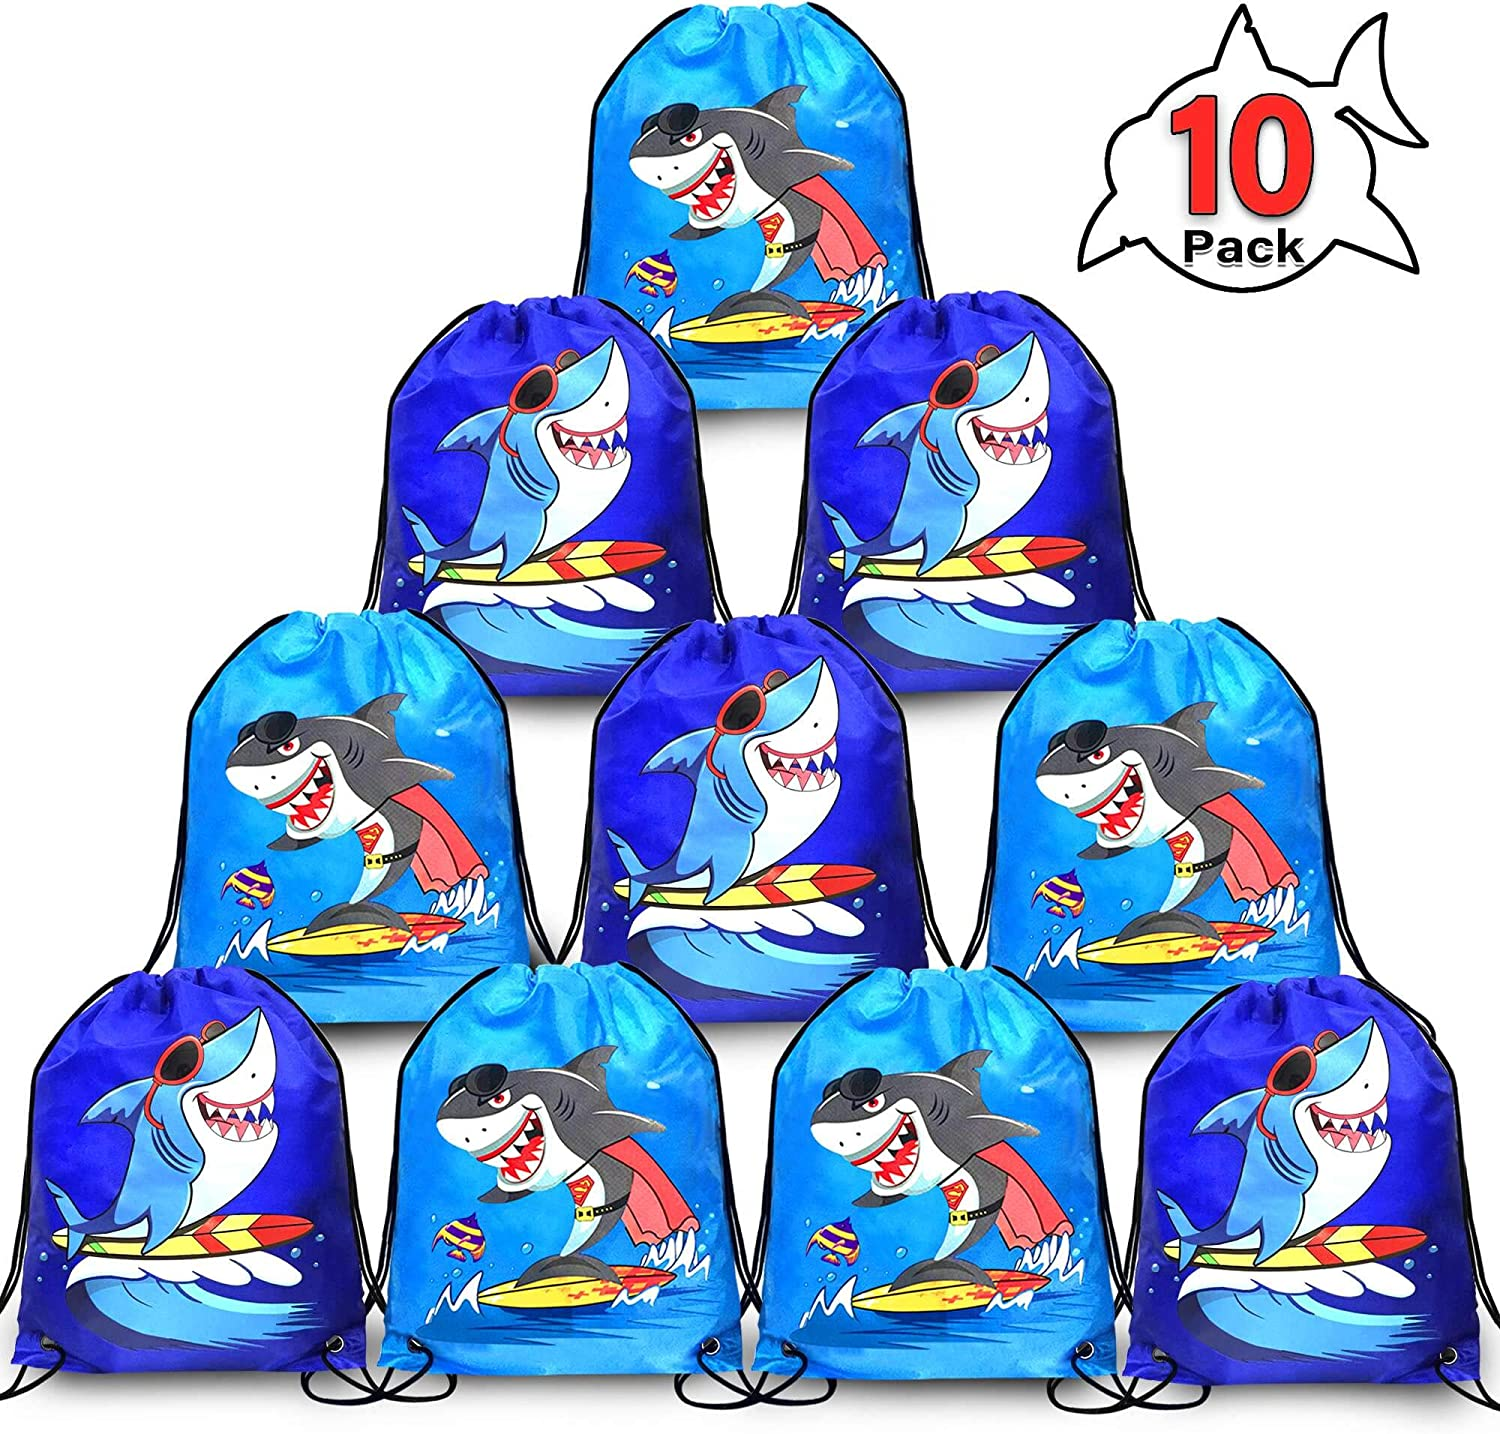 Grier 10Pack Cute Shark Party Supplies Favors Goodie Bags for Kids Boys Girls,10x12Inch Shark Drawstring Backpack Goodie Treat Bags Storage Backpack Birthday Party Favors